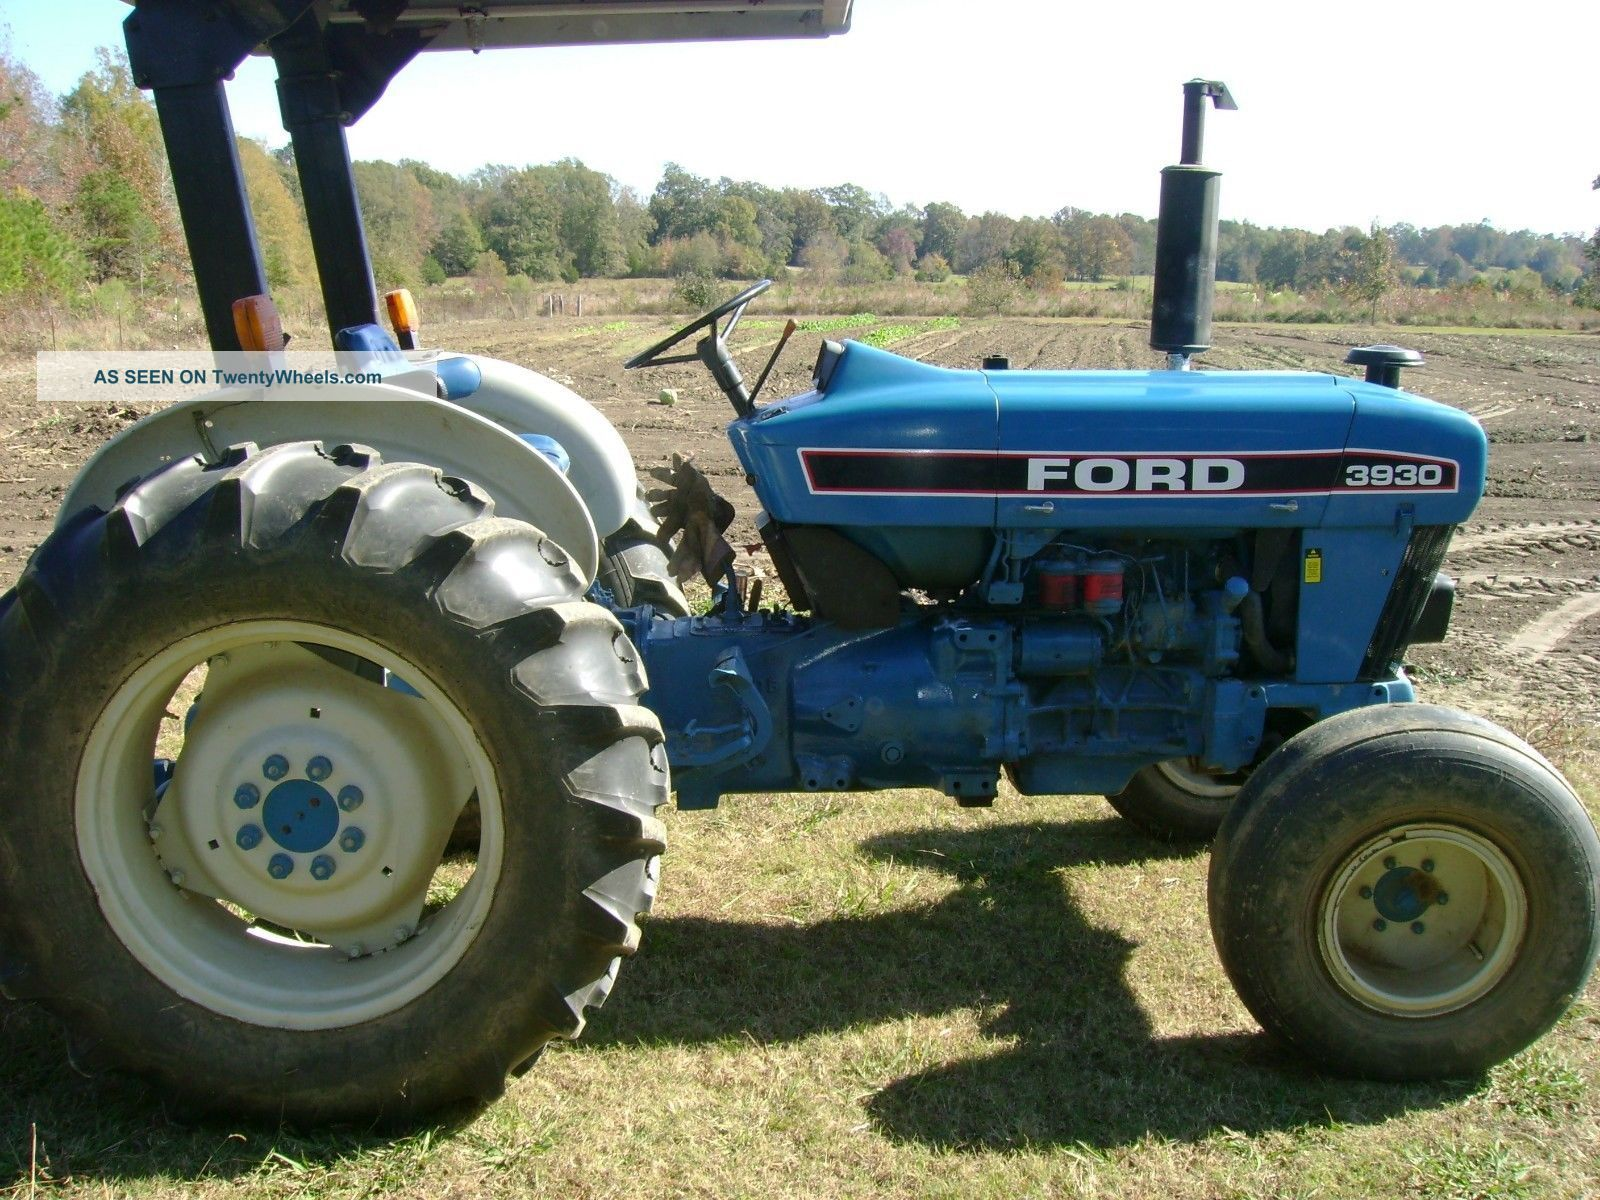 Ford Tractor Rims : Ford tractor rims